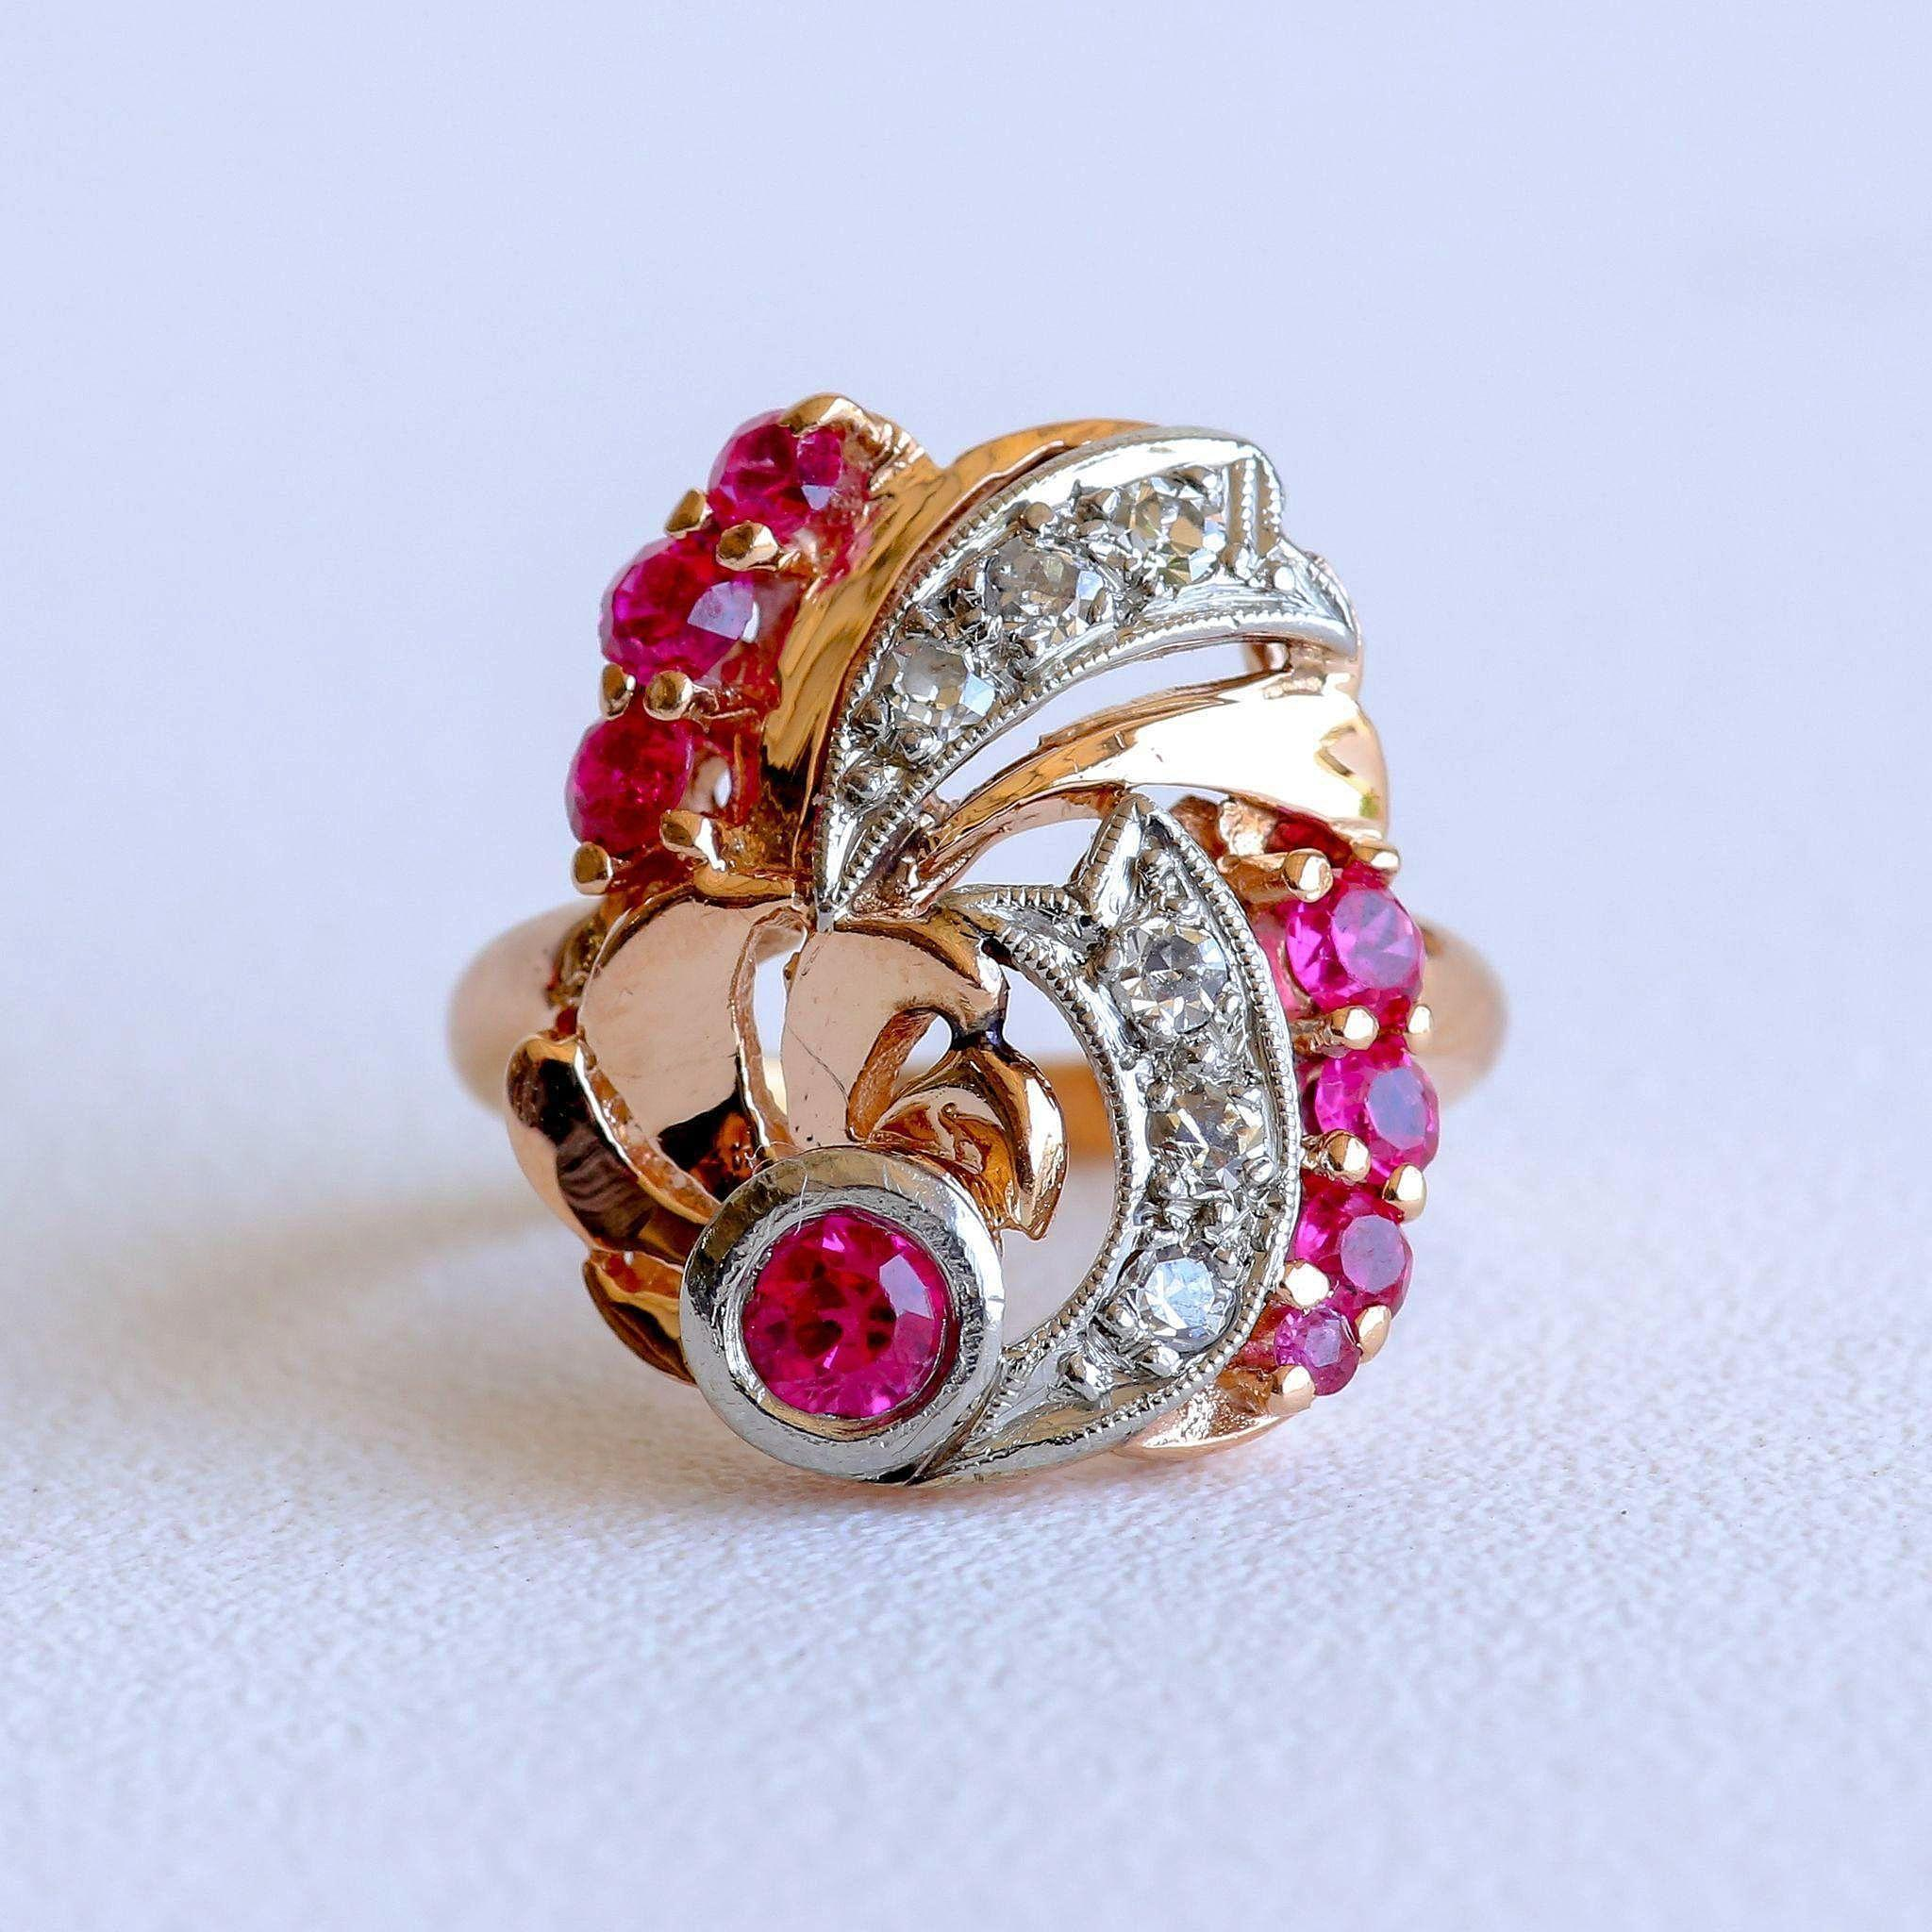 Lady's Circa 1930's Retro 14K Rose Gold Ruby & Diamond Ring